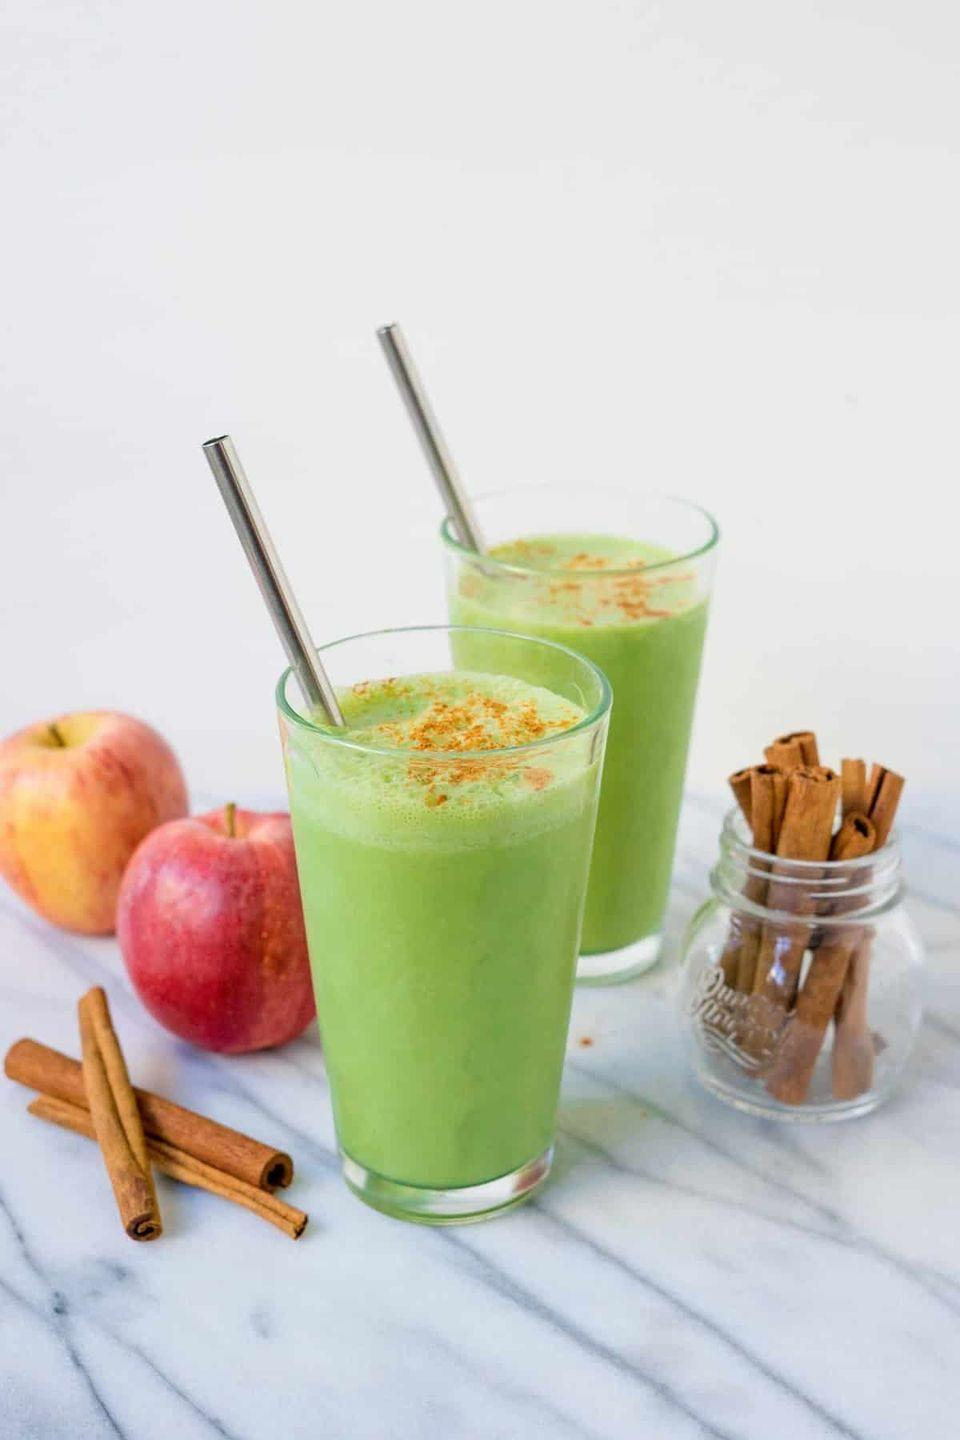 """<p>Another fall vibe, this apple pie spinach smoothie will totally get you in the crisp autumn mood. It has all the good stuff: apple cider vinegar, apple sauce, baby spinach, Greek yogurt, cinnamon, vanilla extract and more. <em><br></em></p><p><em>Per serving: 292 cals, 1 g fat, 61 g carbs, 6 g fiber, 42 g sugar, 14 g protein</em></p><p><a class=""""link rapid-noclick-resp"""" href=""""https://wholefully.com/apple-pie-spinach-smoothie/"""" rel=""""nofollow noopener"""" target=""""_blank"""" data-ylk=""""slk:Get the recipe"""">Get the recipe</a></p>"""